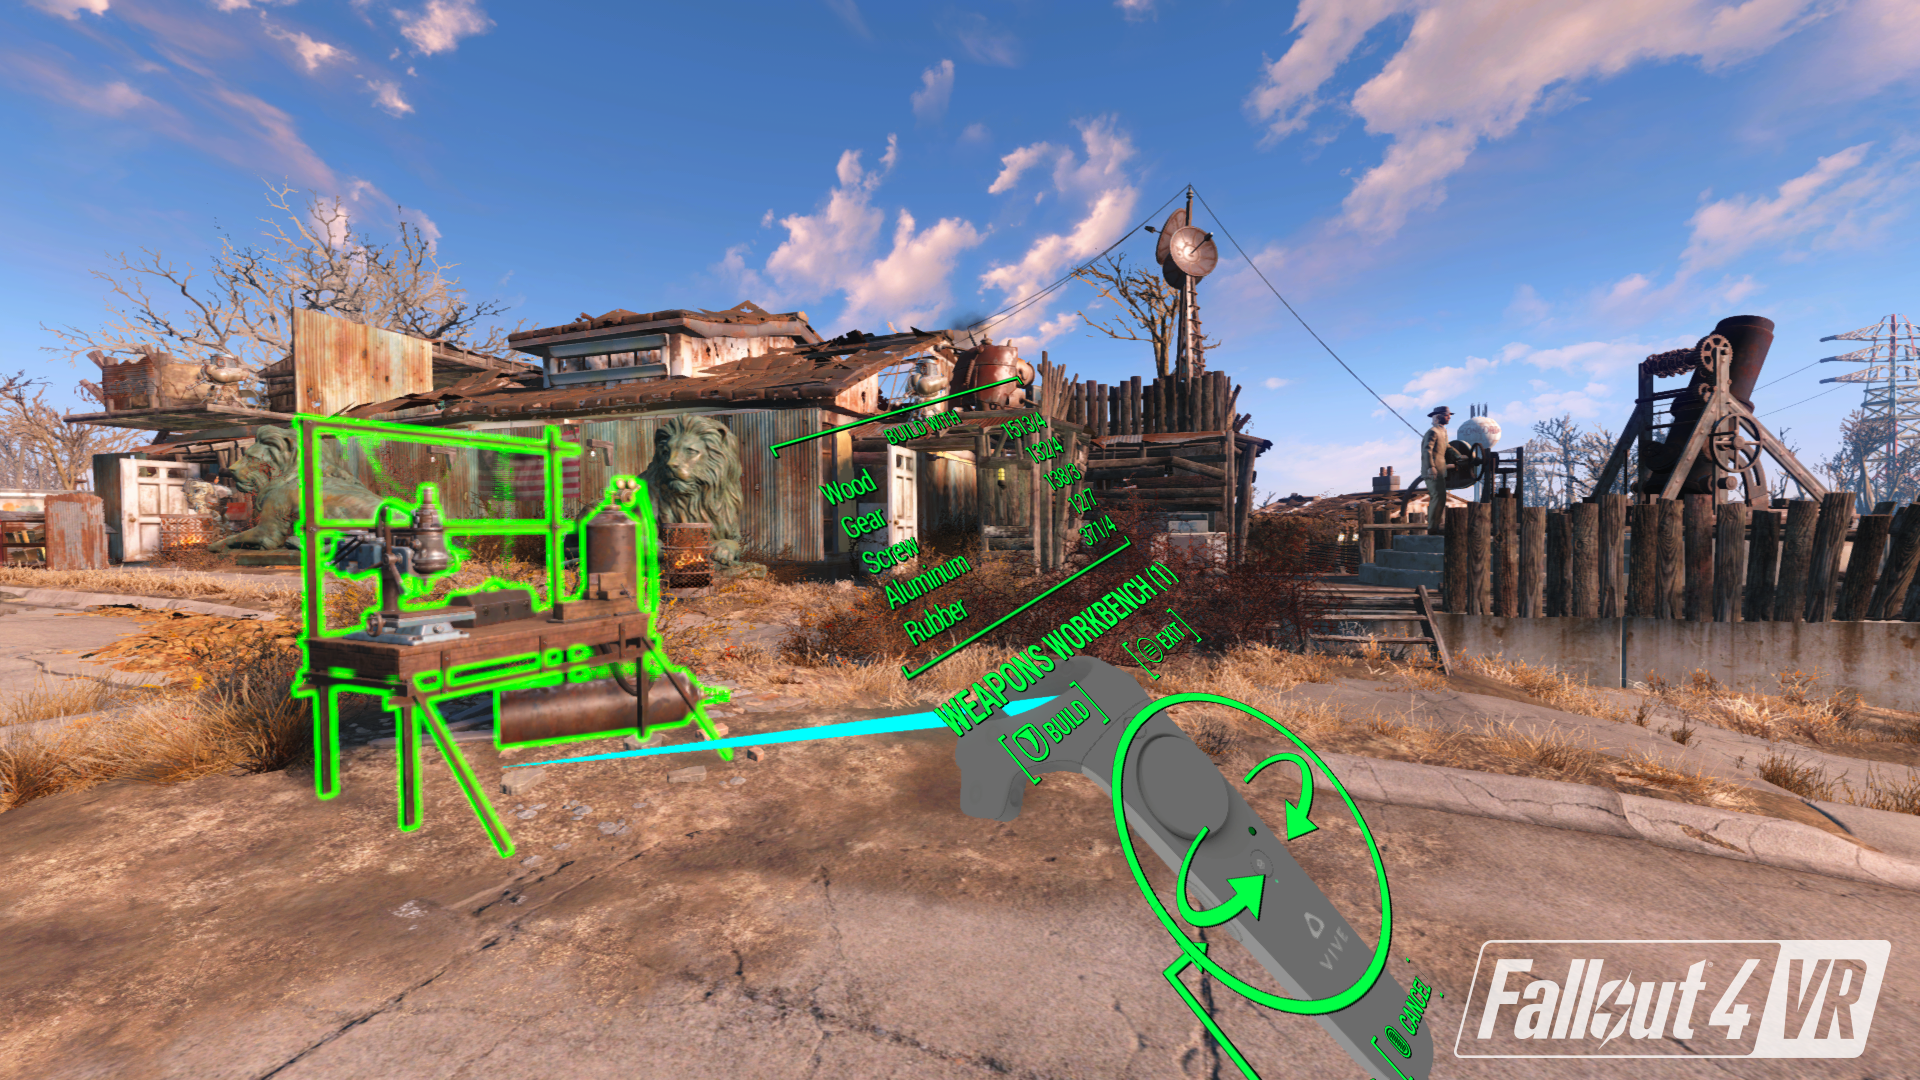 fallout-4-vr-screenshots-bethesda-post-apocalyptic-rpg-htc-vive-pc-steam